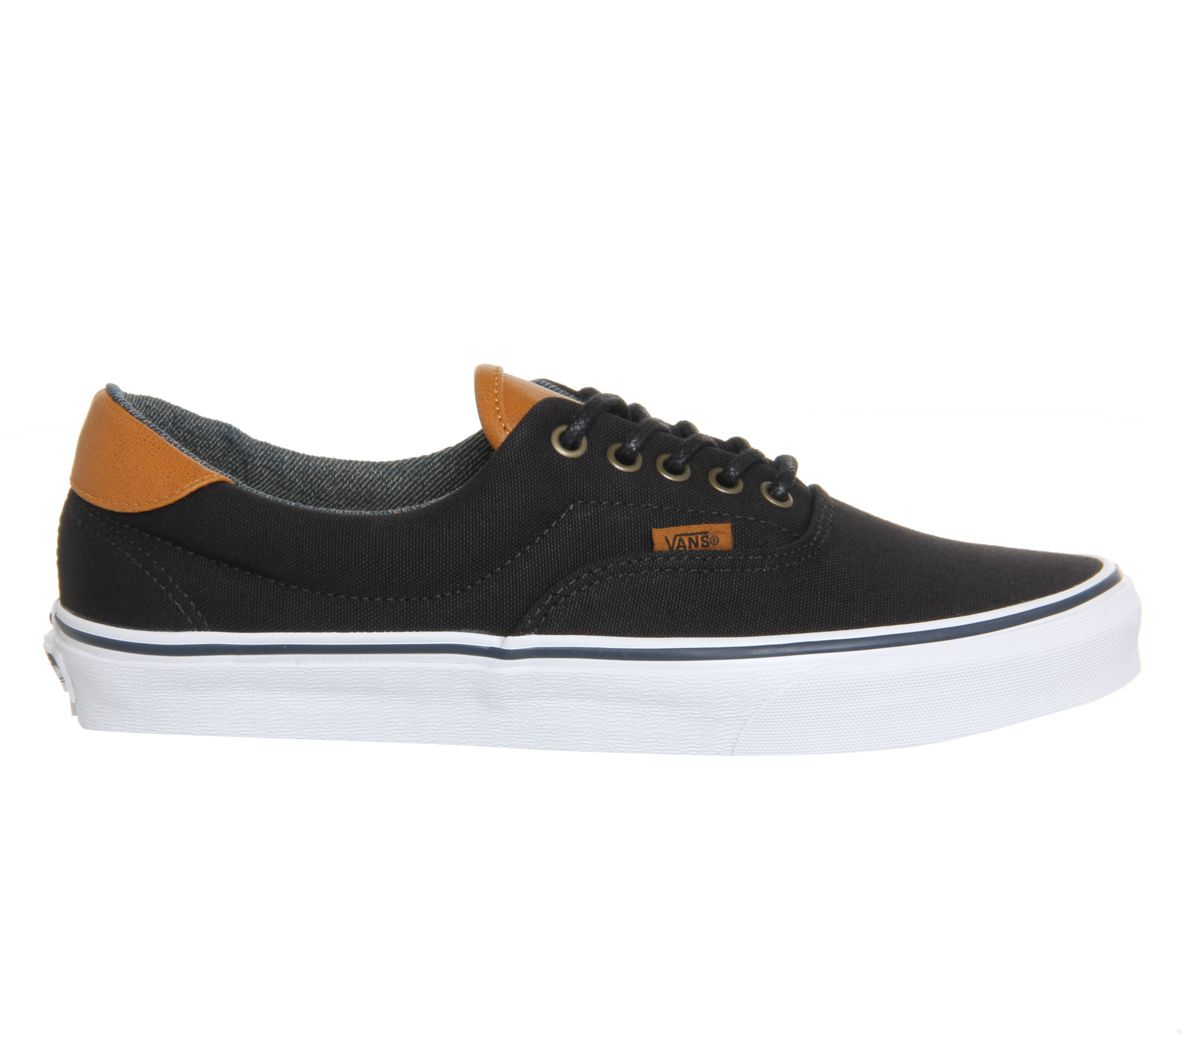 Vans Era 59 Washed Titolo St - His trainers